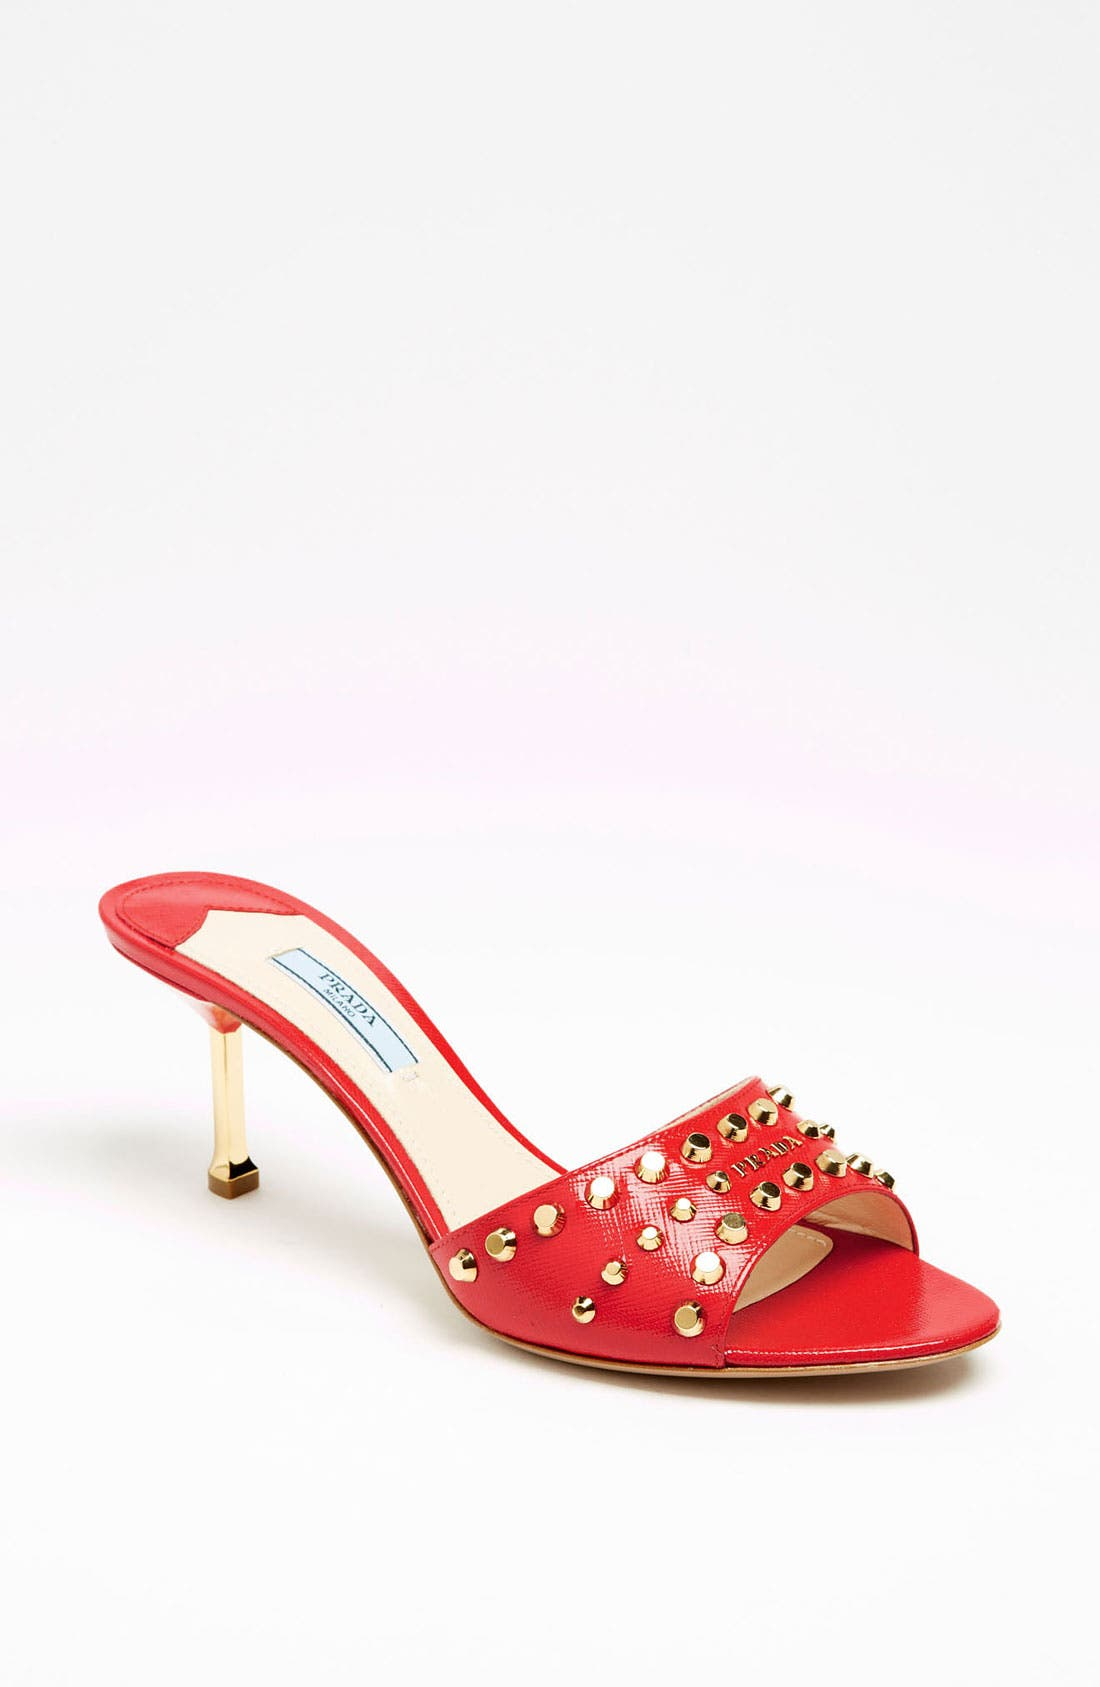 Alternate Image 1 Selected - Prada Studded Slide Sandal